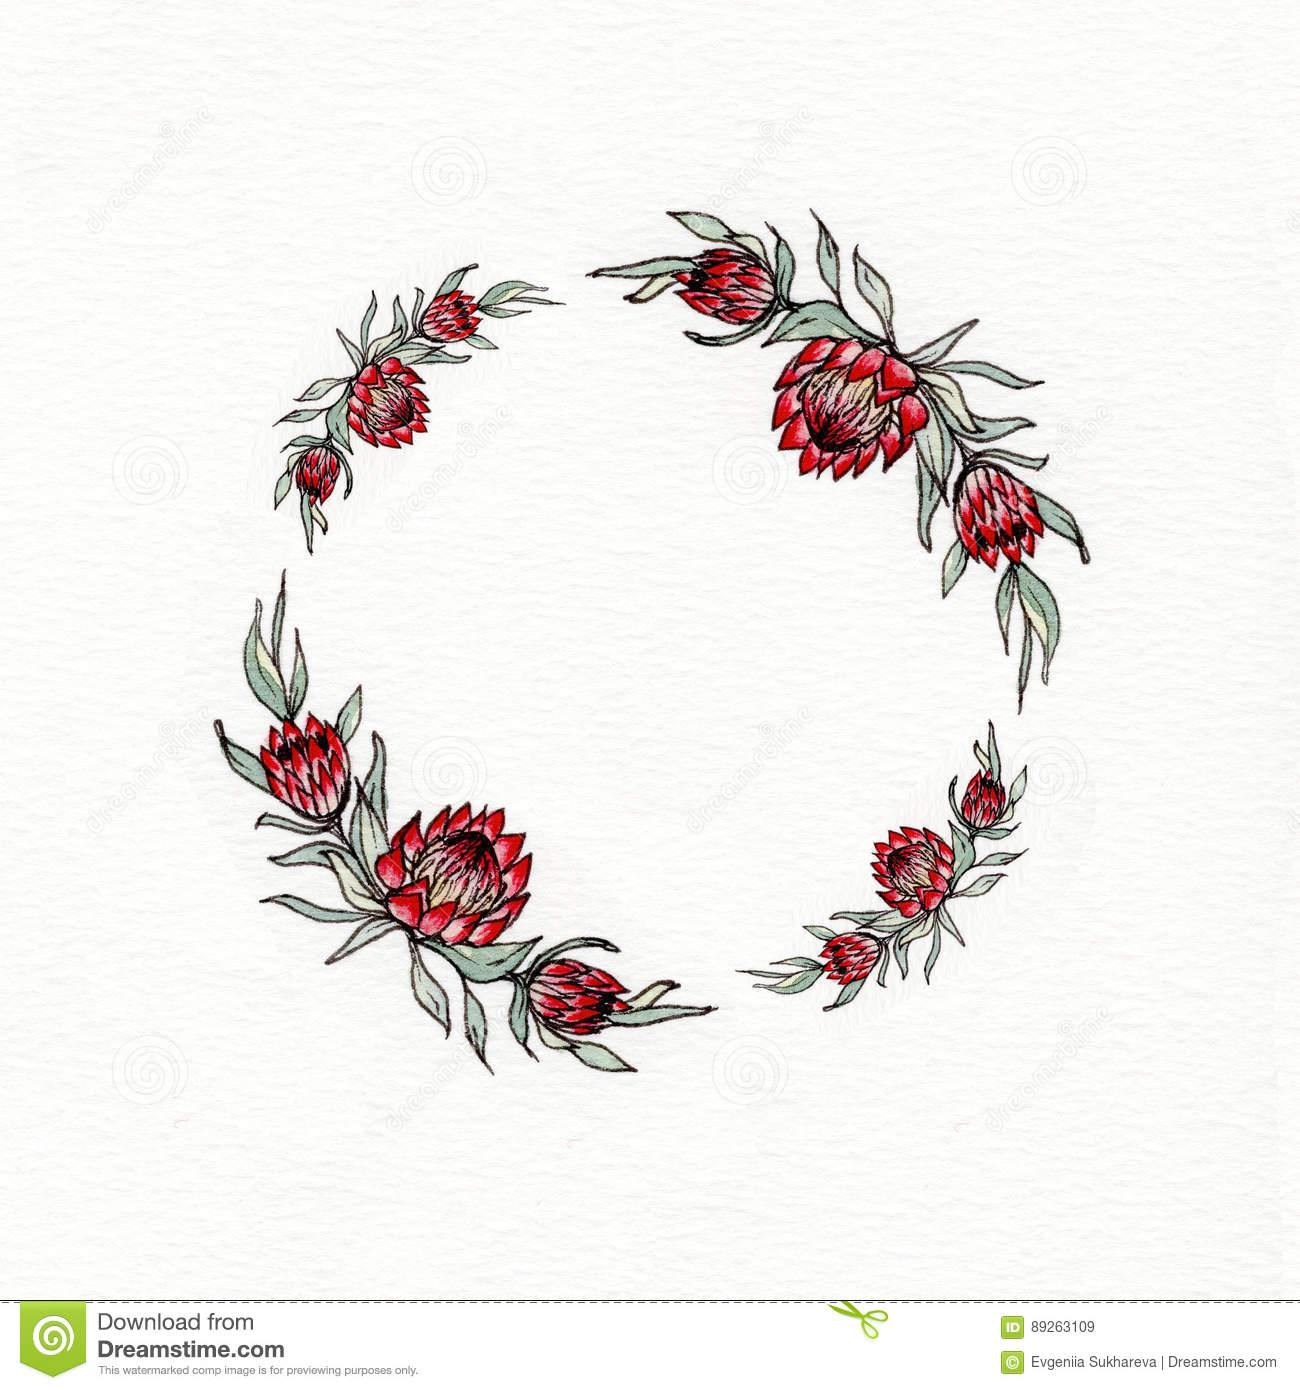 Watercolor Protea Flower Wreath Royalty Free Stock